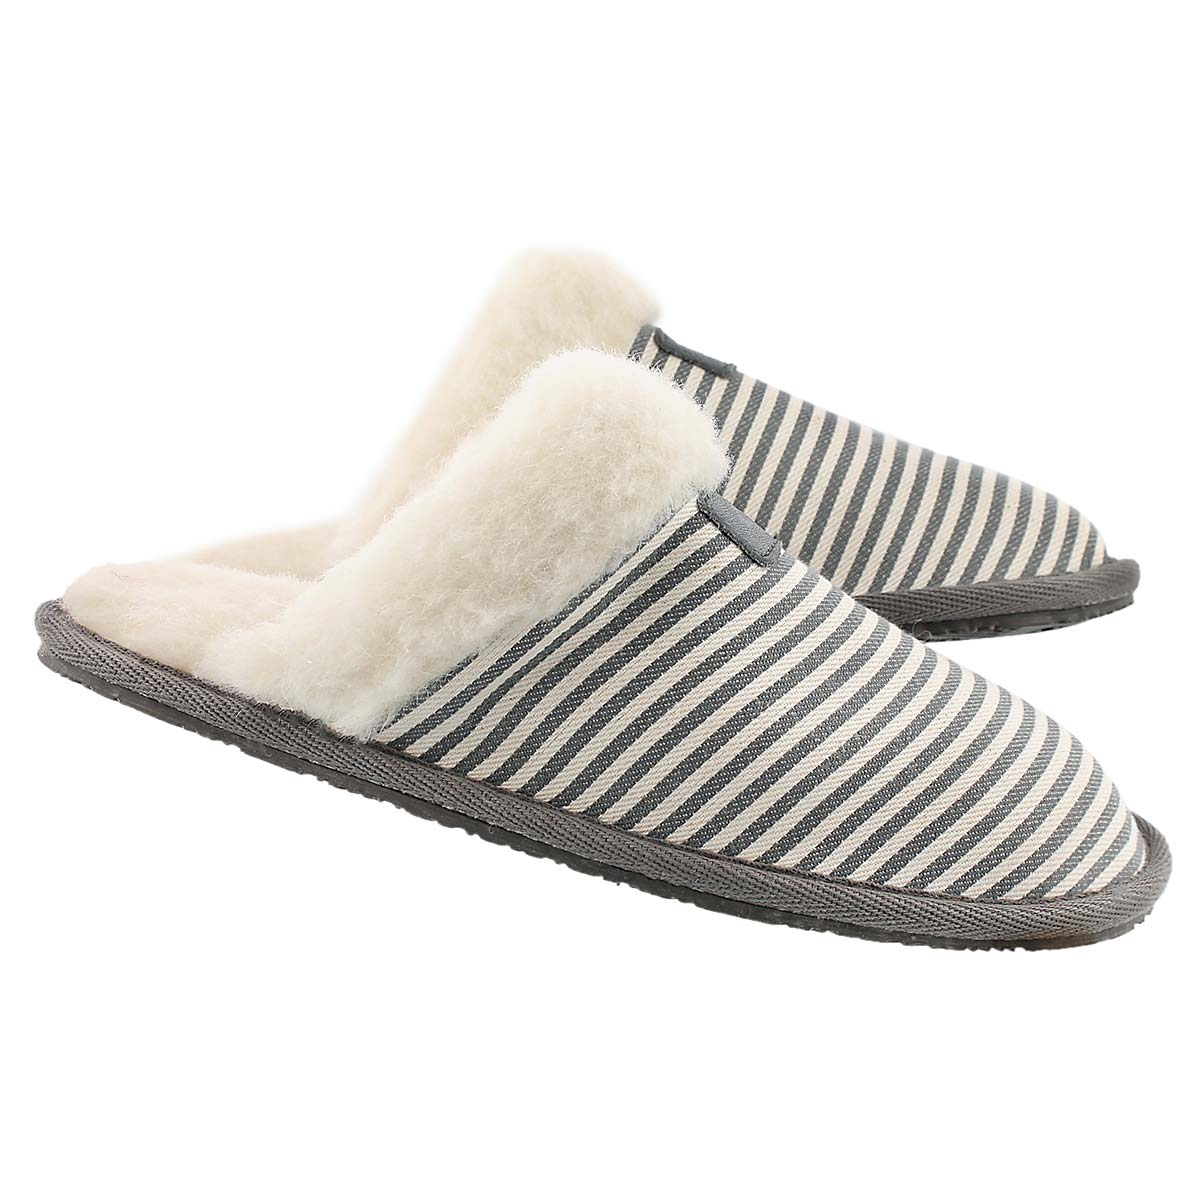 Lds Stacey grey stripe mem. foam slipper